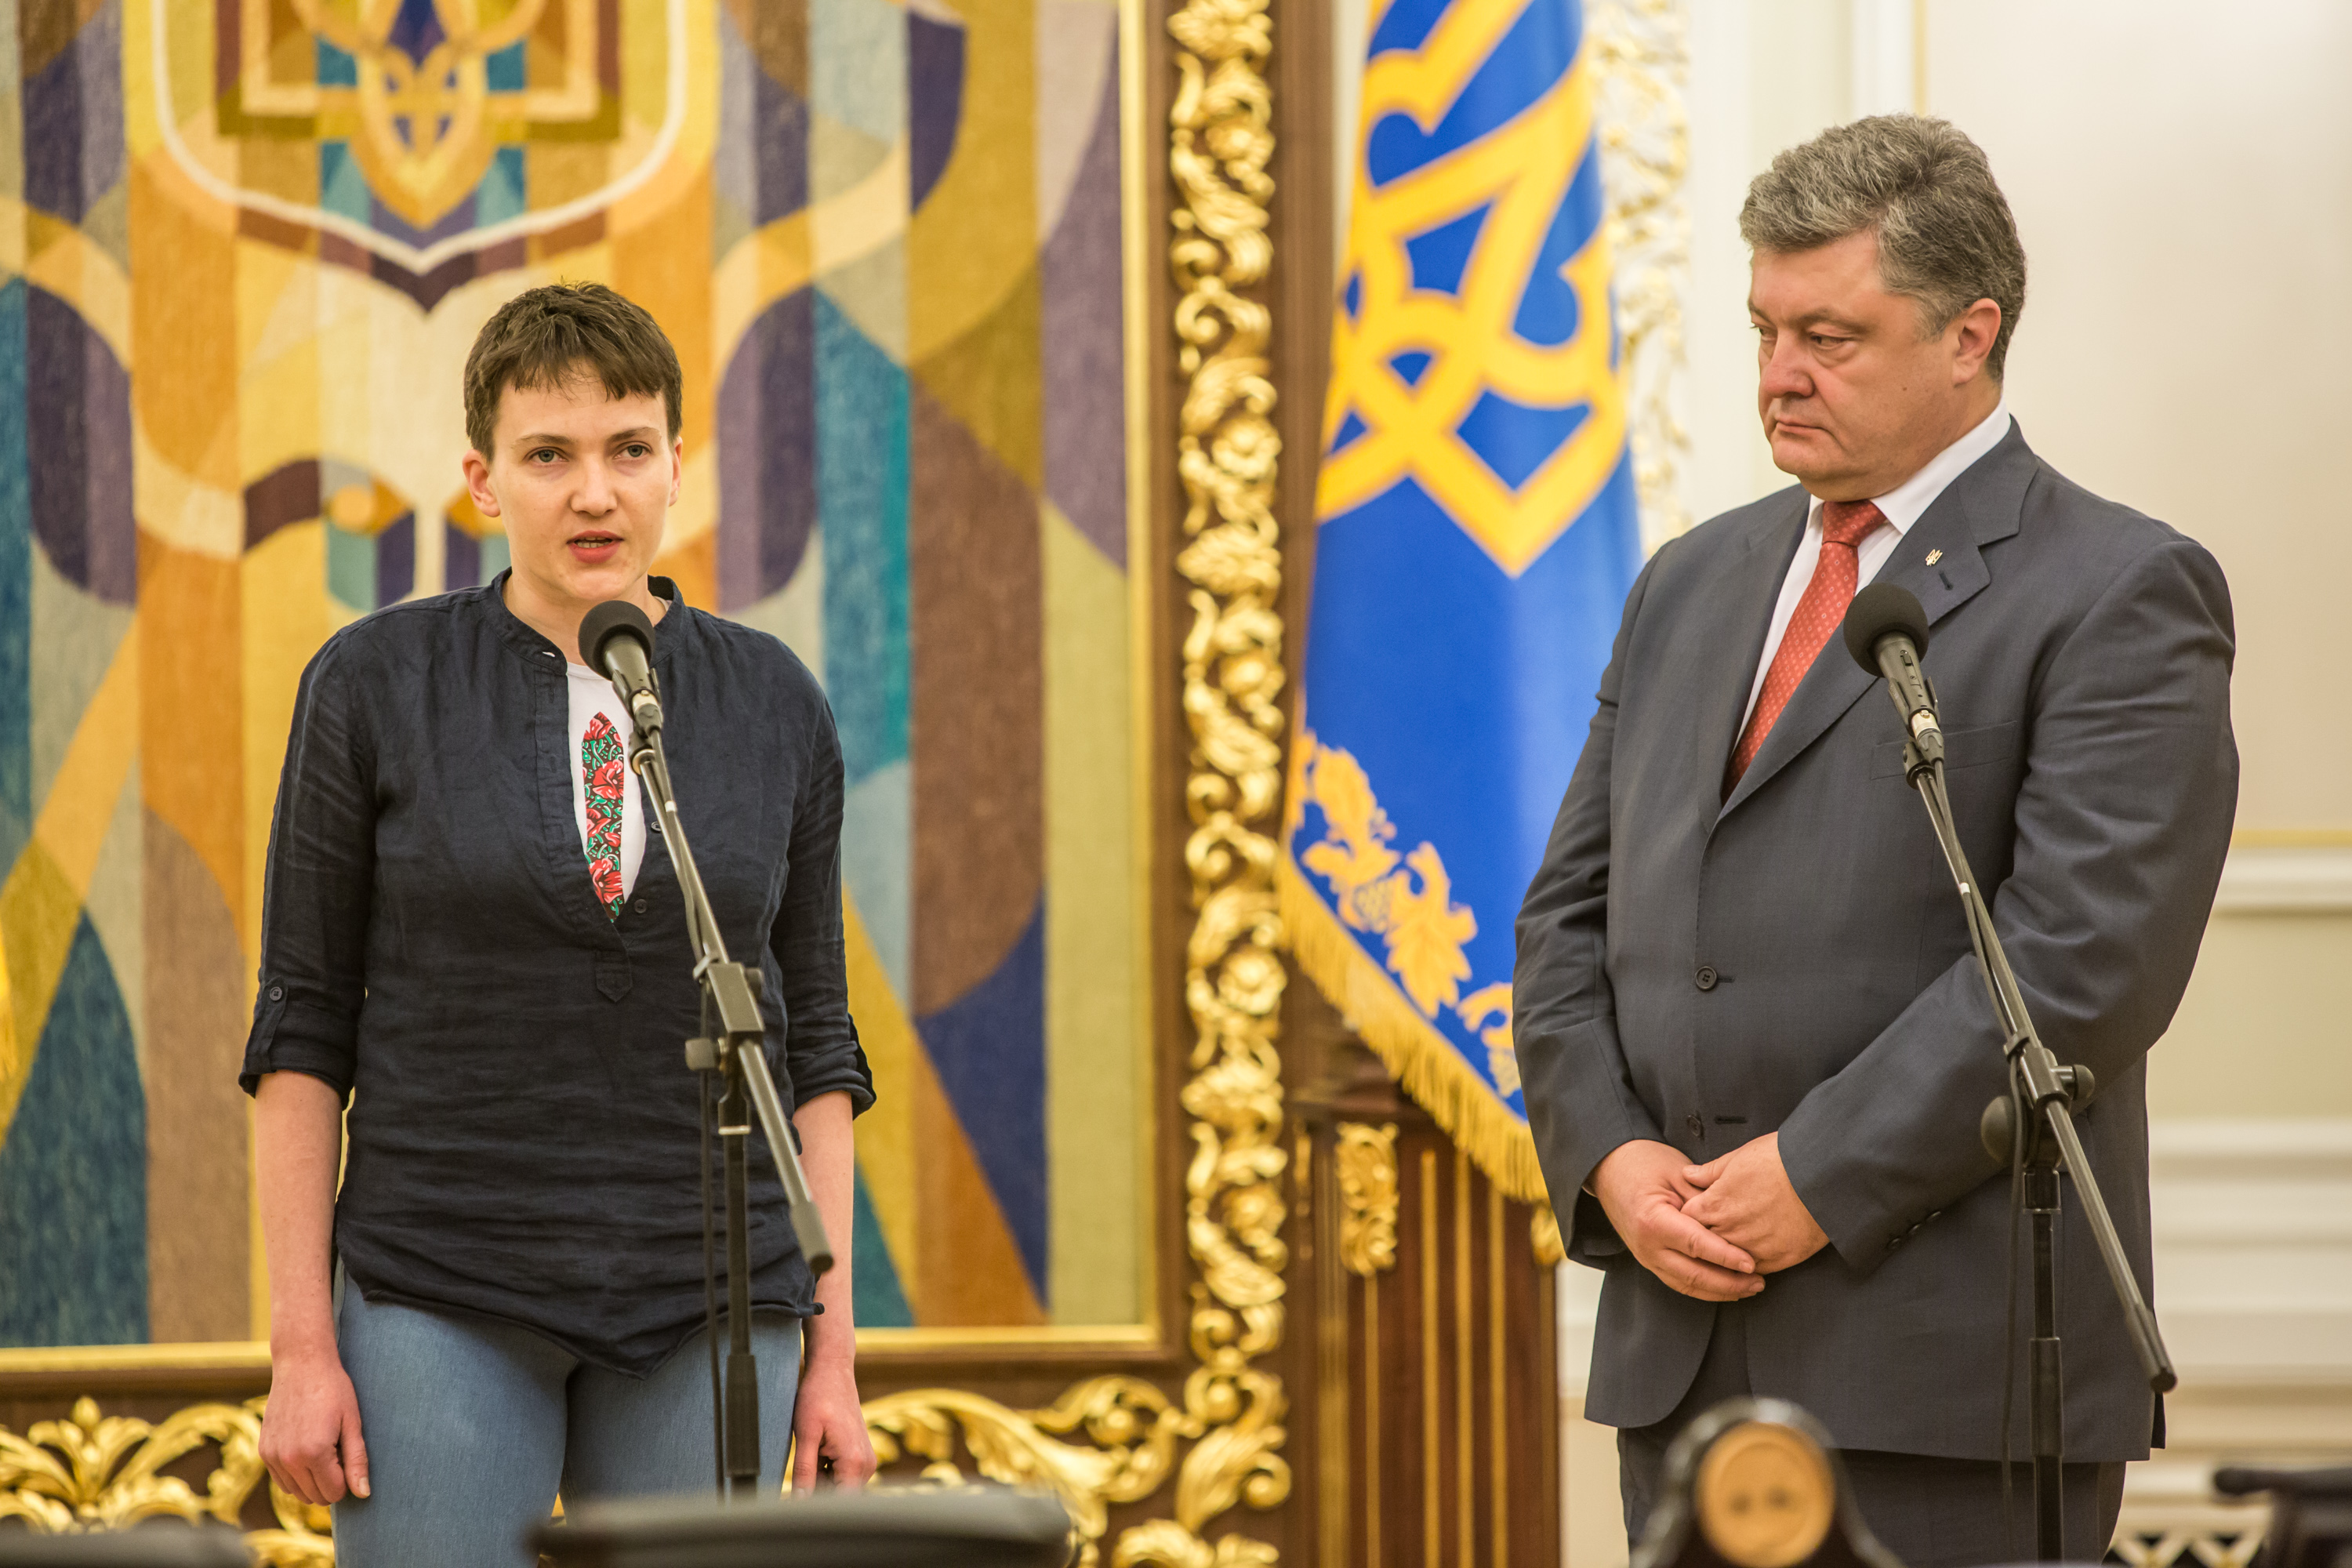 Ukrainian military pilot Nadiya Savchenko (L) joins Ukrainian president Petro Poroshenko to address the media at the Presidential Administration building following Savchenko's return to Ukraine on May 25, 2016 in Kiev, Ukraine. Savchenko was captured while fighting Russia-backed rebels in eastern Ukraine and put on trial in Russia on charges that she was complicit in the deaths of two Russian journalists. She was elected to the Ukrainian parliament under Tymoshenko's Fatherland party while being held in Russia, and in March she was convicted of murder and sentenced to 22 years in prison, but was reportedly swapped for two Russian fighters captured by Ukrainian forces.